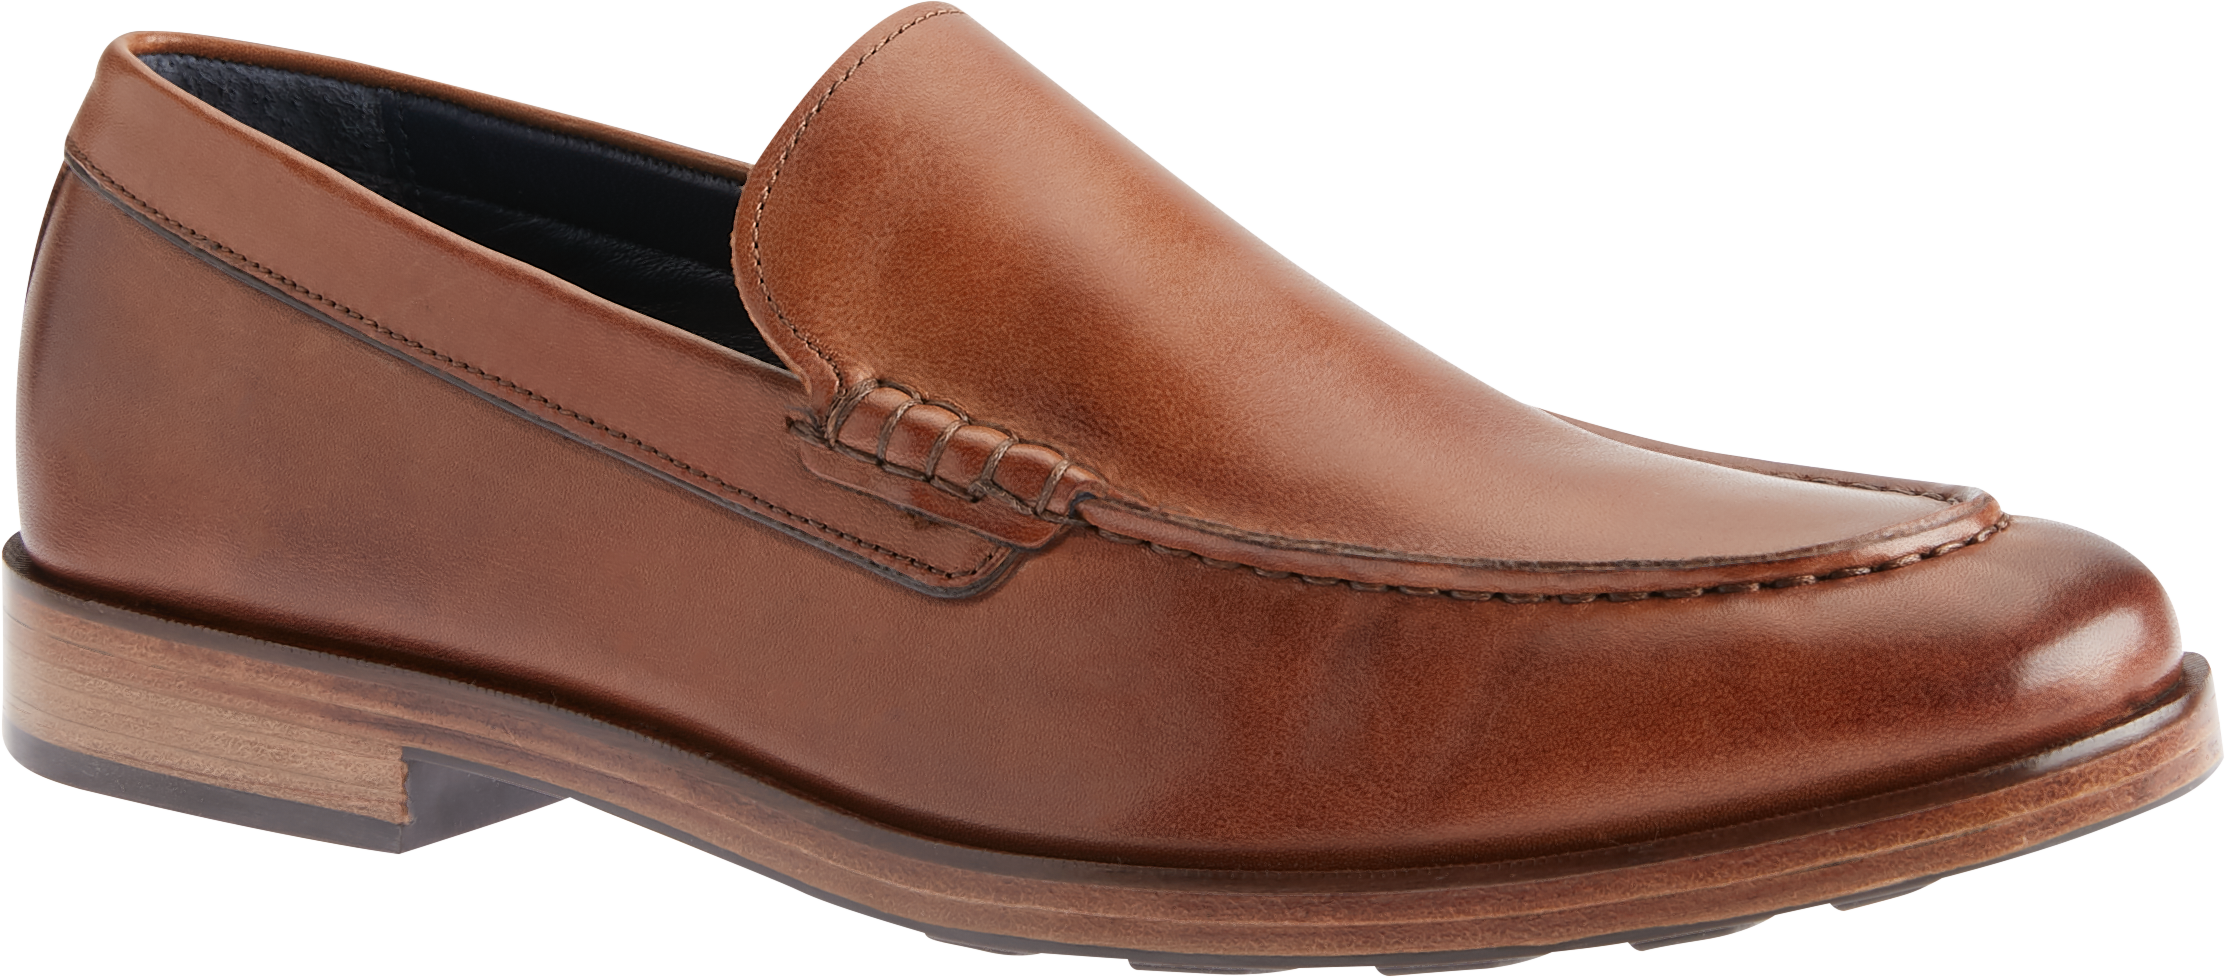 8a6fd290478 Cole Haan Hamilton Grand Venetian Loafers - Cole Haan